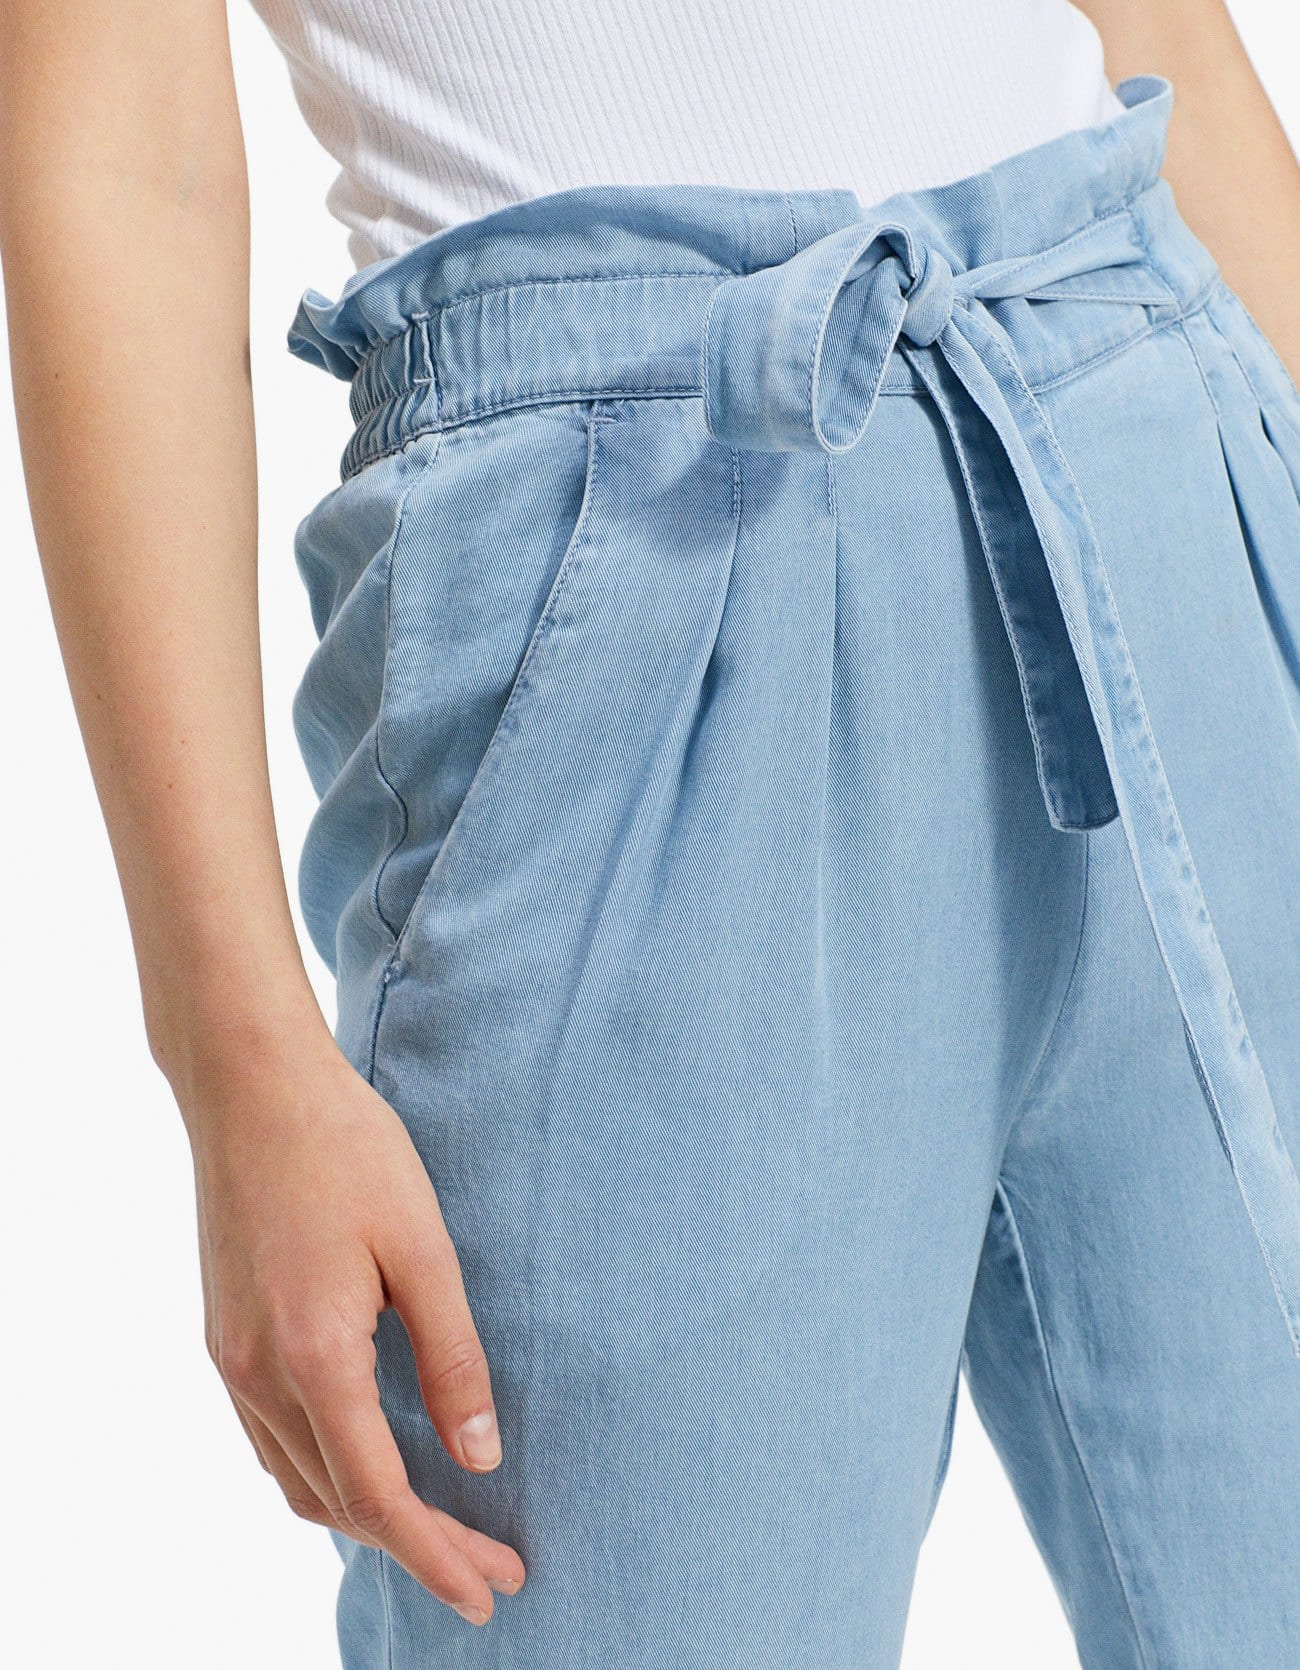 303047a4eea Stradivarius Flowing Baggy Jeans In Pale Denim at £19.99 | love the ...